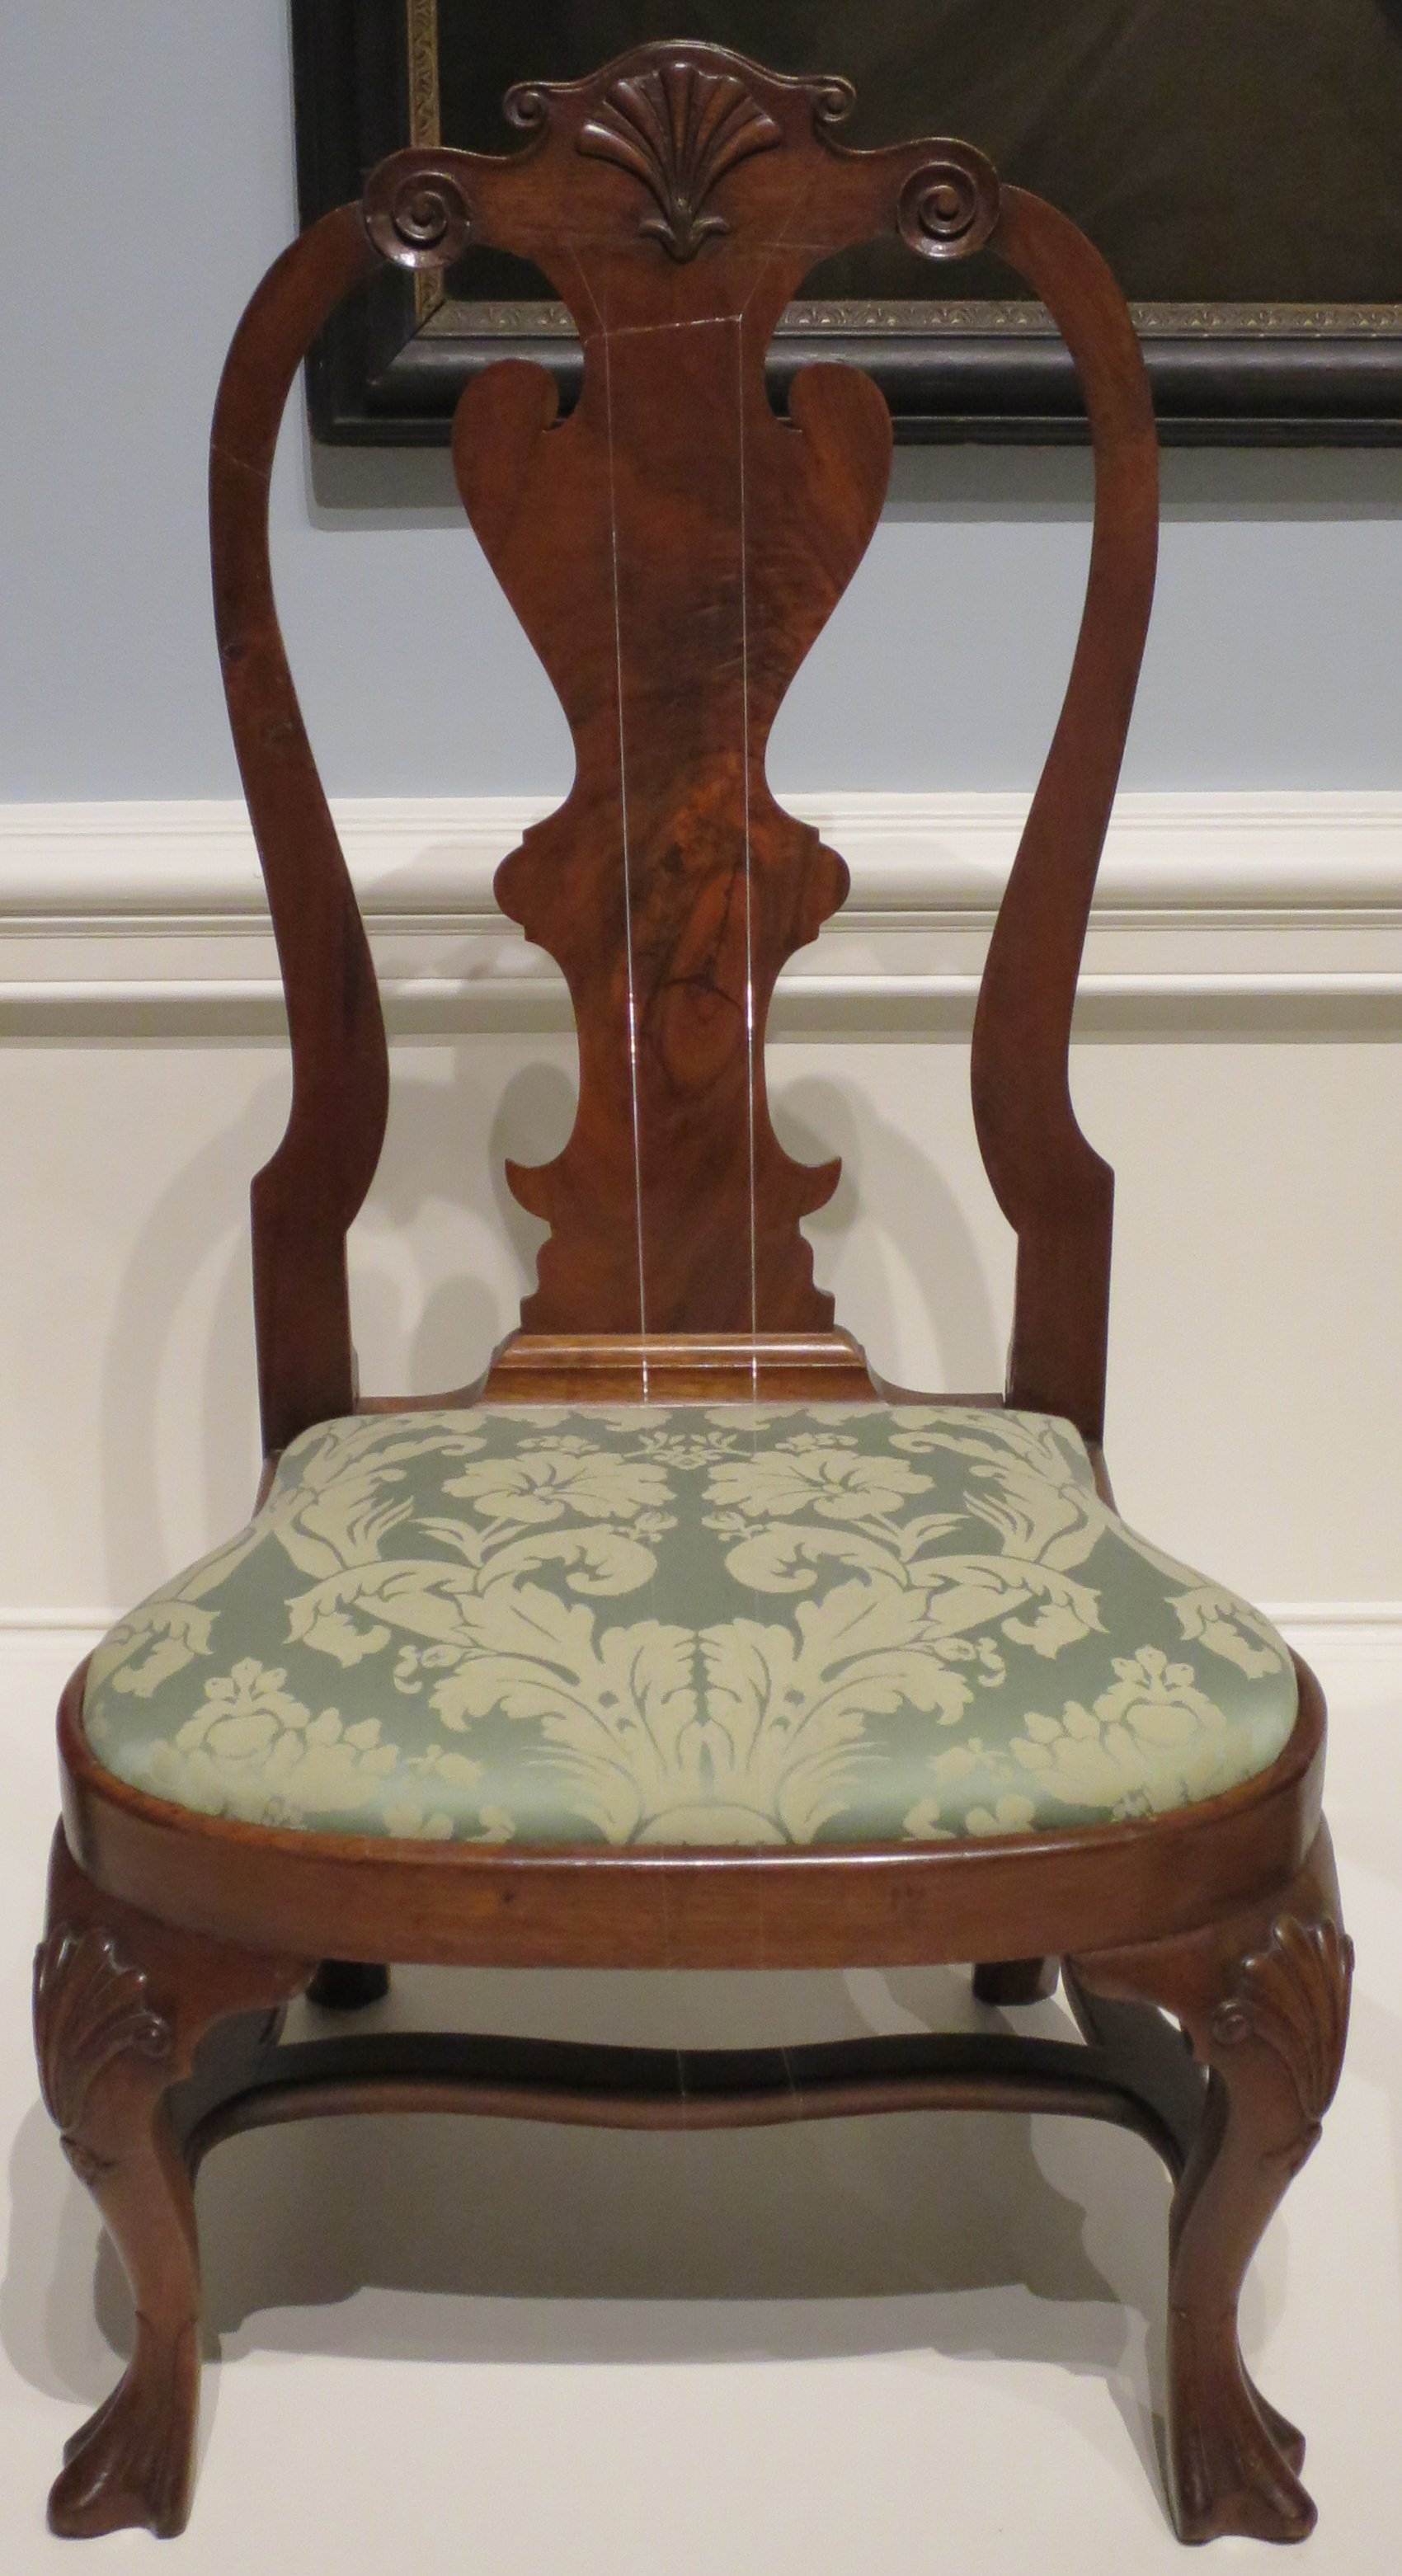 Queen anne chair history - File American Queen Anne Style Slipper Chair C 1740 60 Walnut